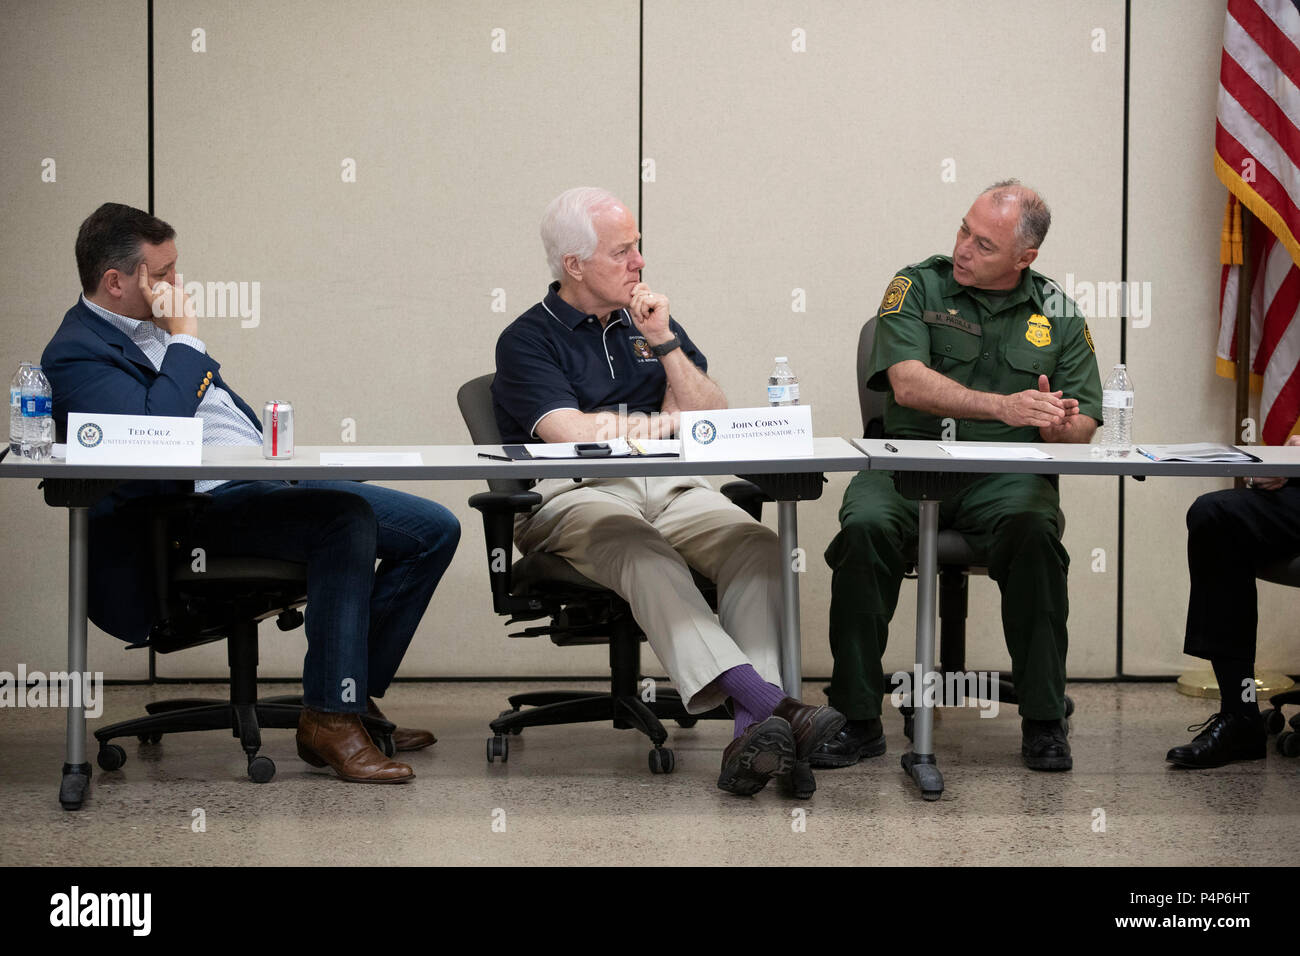 U.S. Senators Ted Cruz and John Cornyn listen as federal and Texas officials and stakeholders meet in a round-table discussion of the immigration crisis hitting the Texas-Mexico border. Confusion and public outrage reigned regarding the Trump administration's policy of separating undocumented immigrant parents from their children after crossing into the U.S. from Mexico. - Stock Image